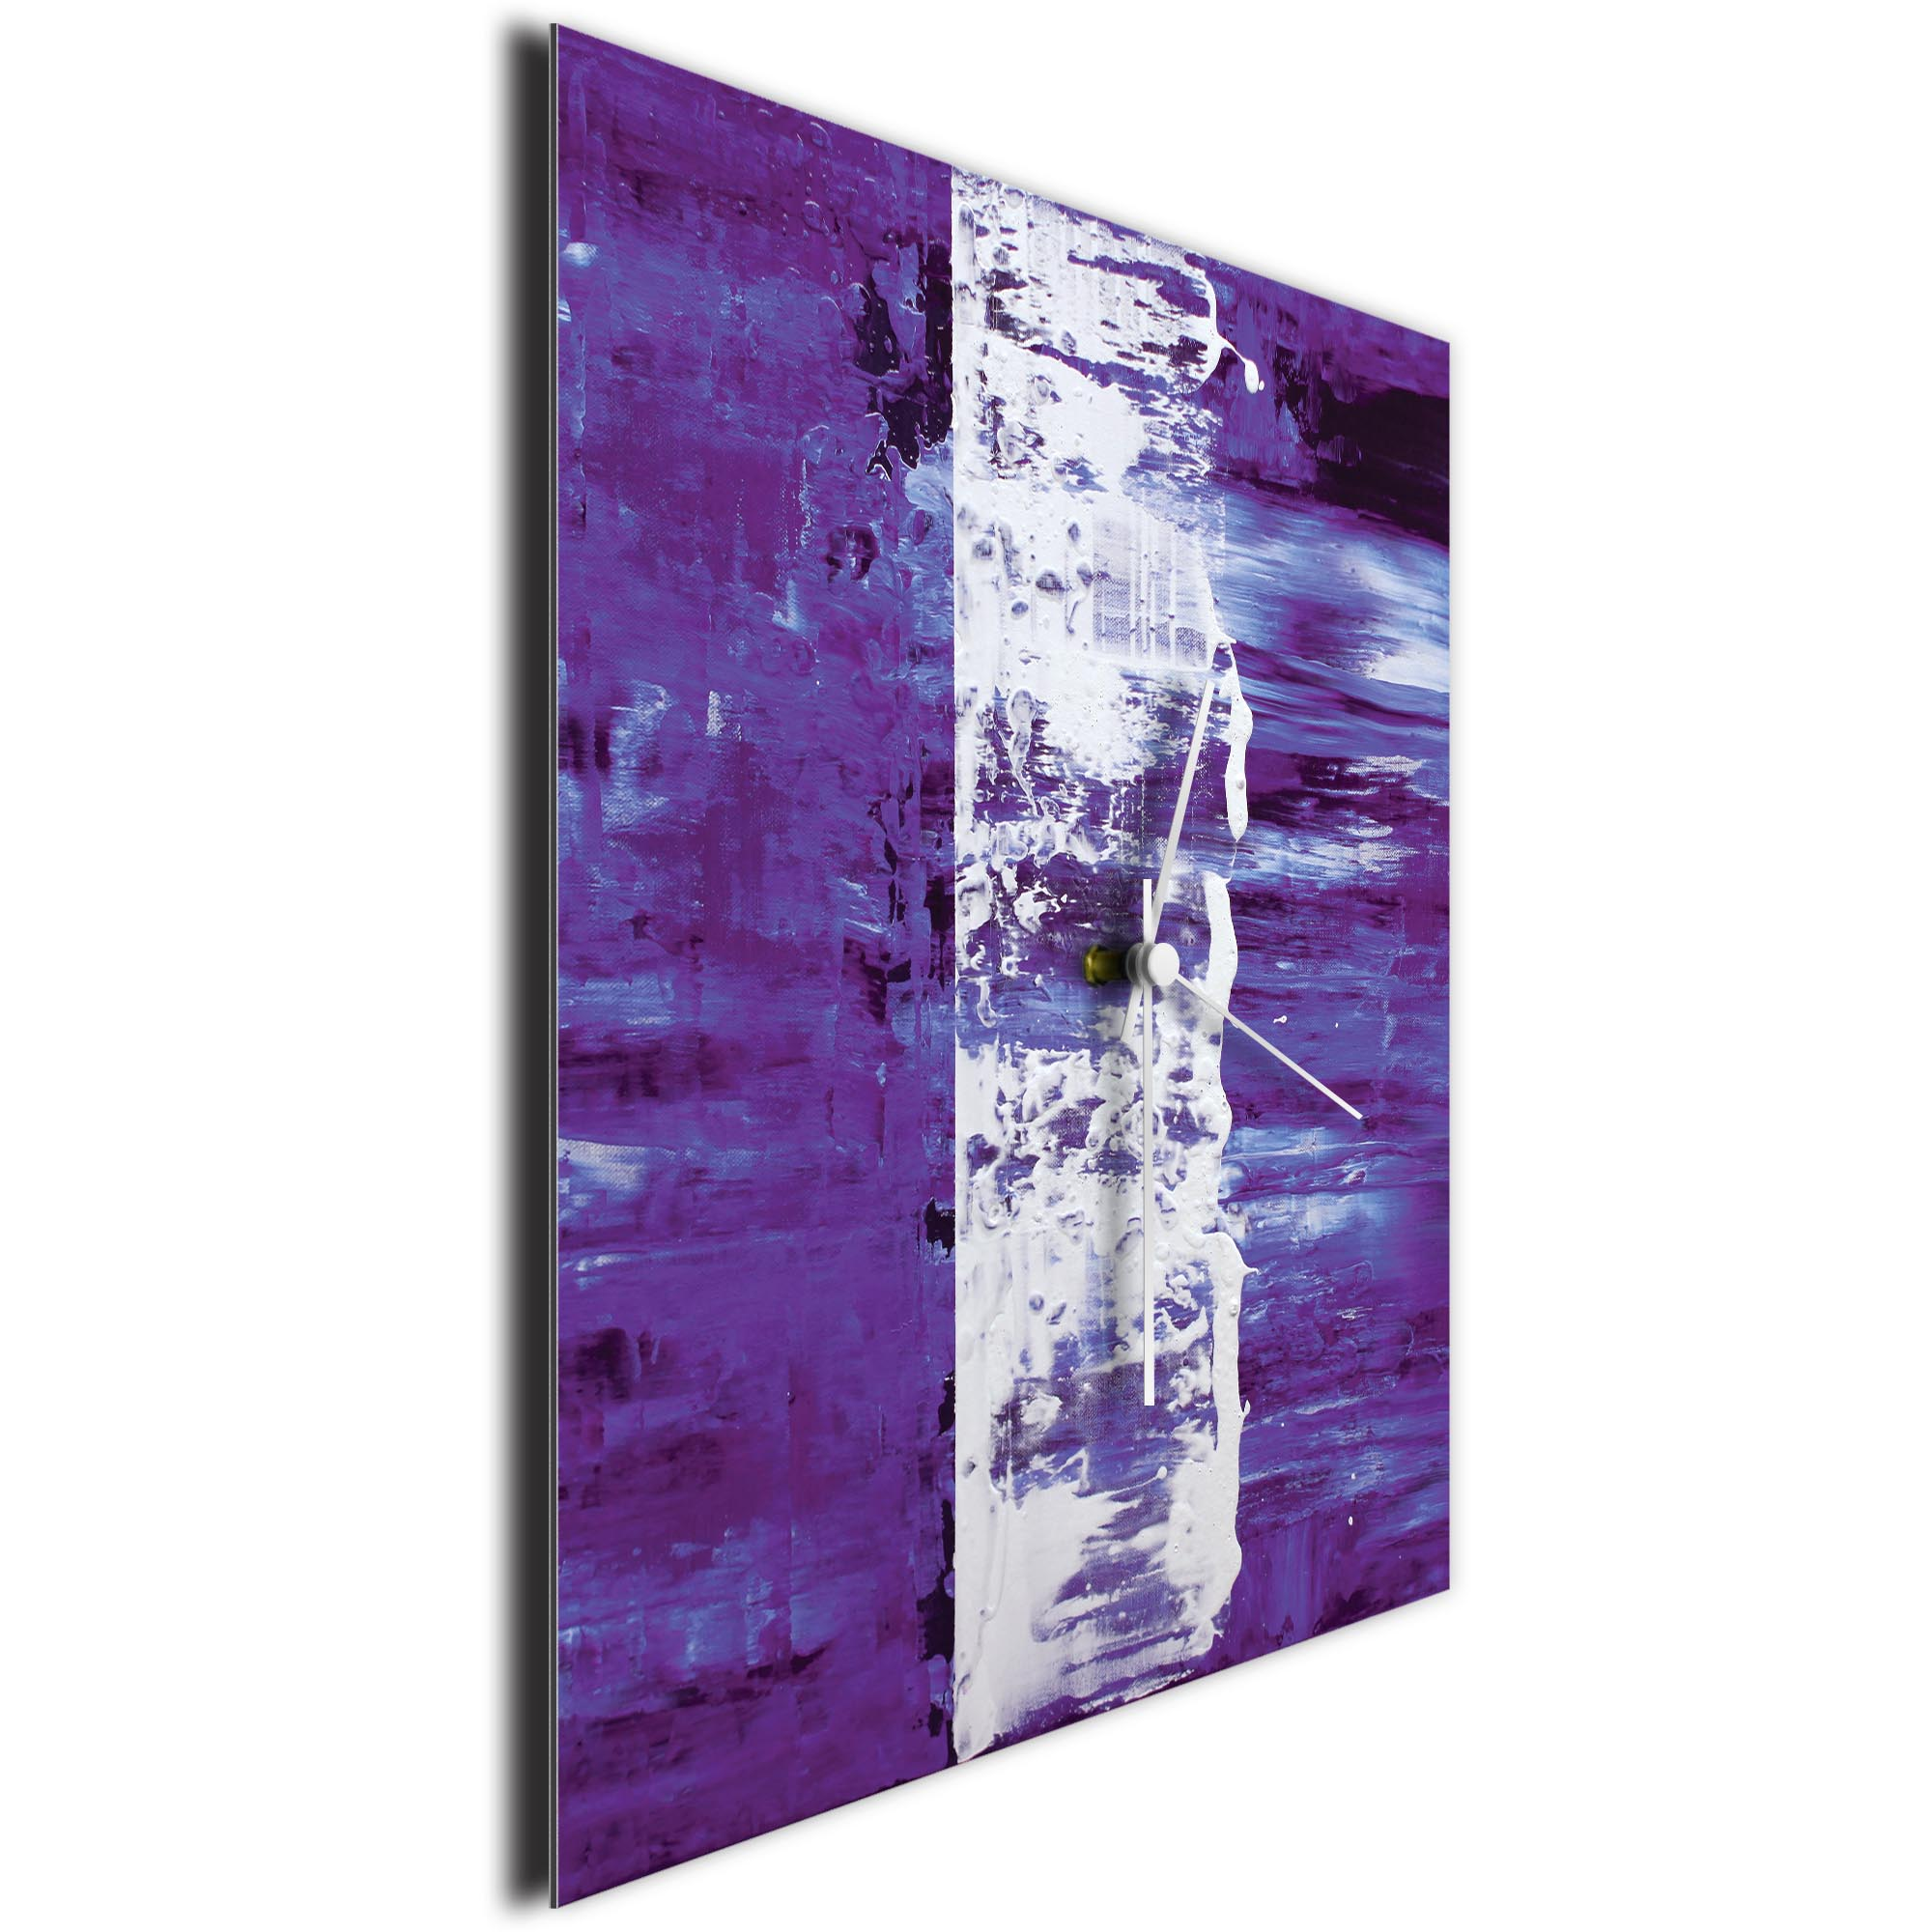 Purple Street Square Clock Large by Mendo Vasilevski - Urban Abstract Home Decor - Image 3